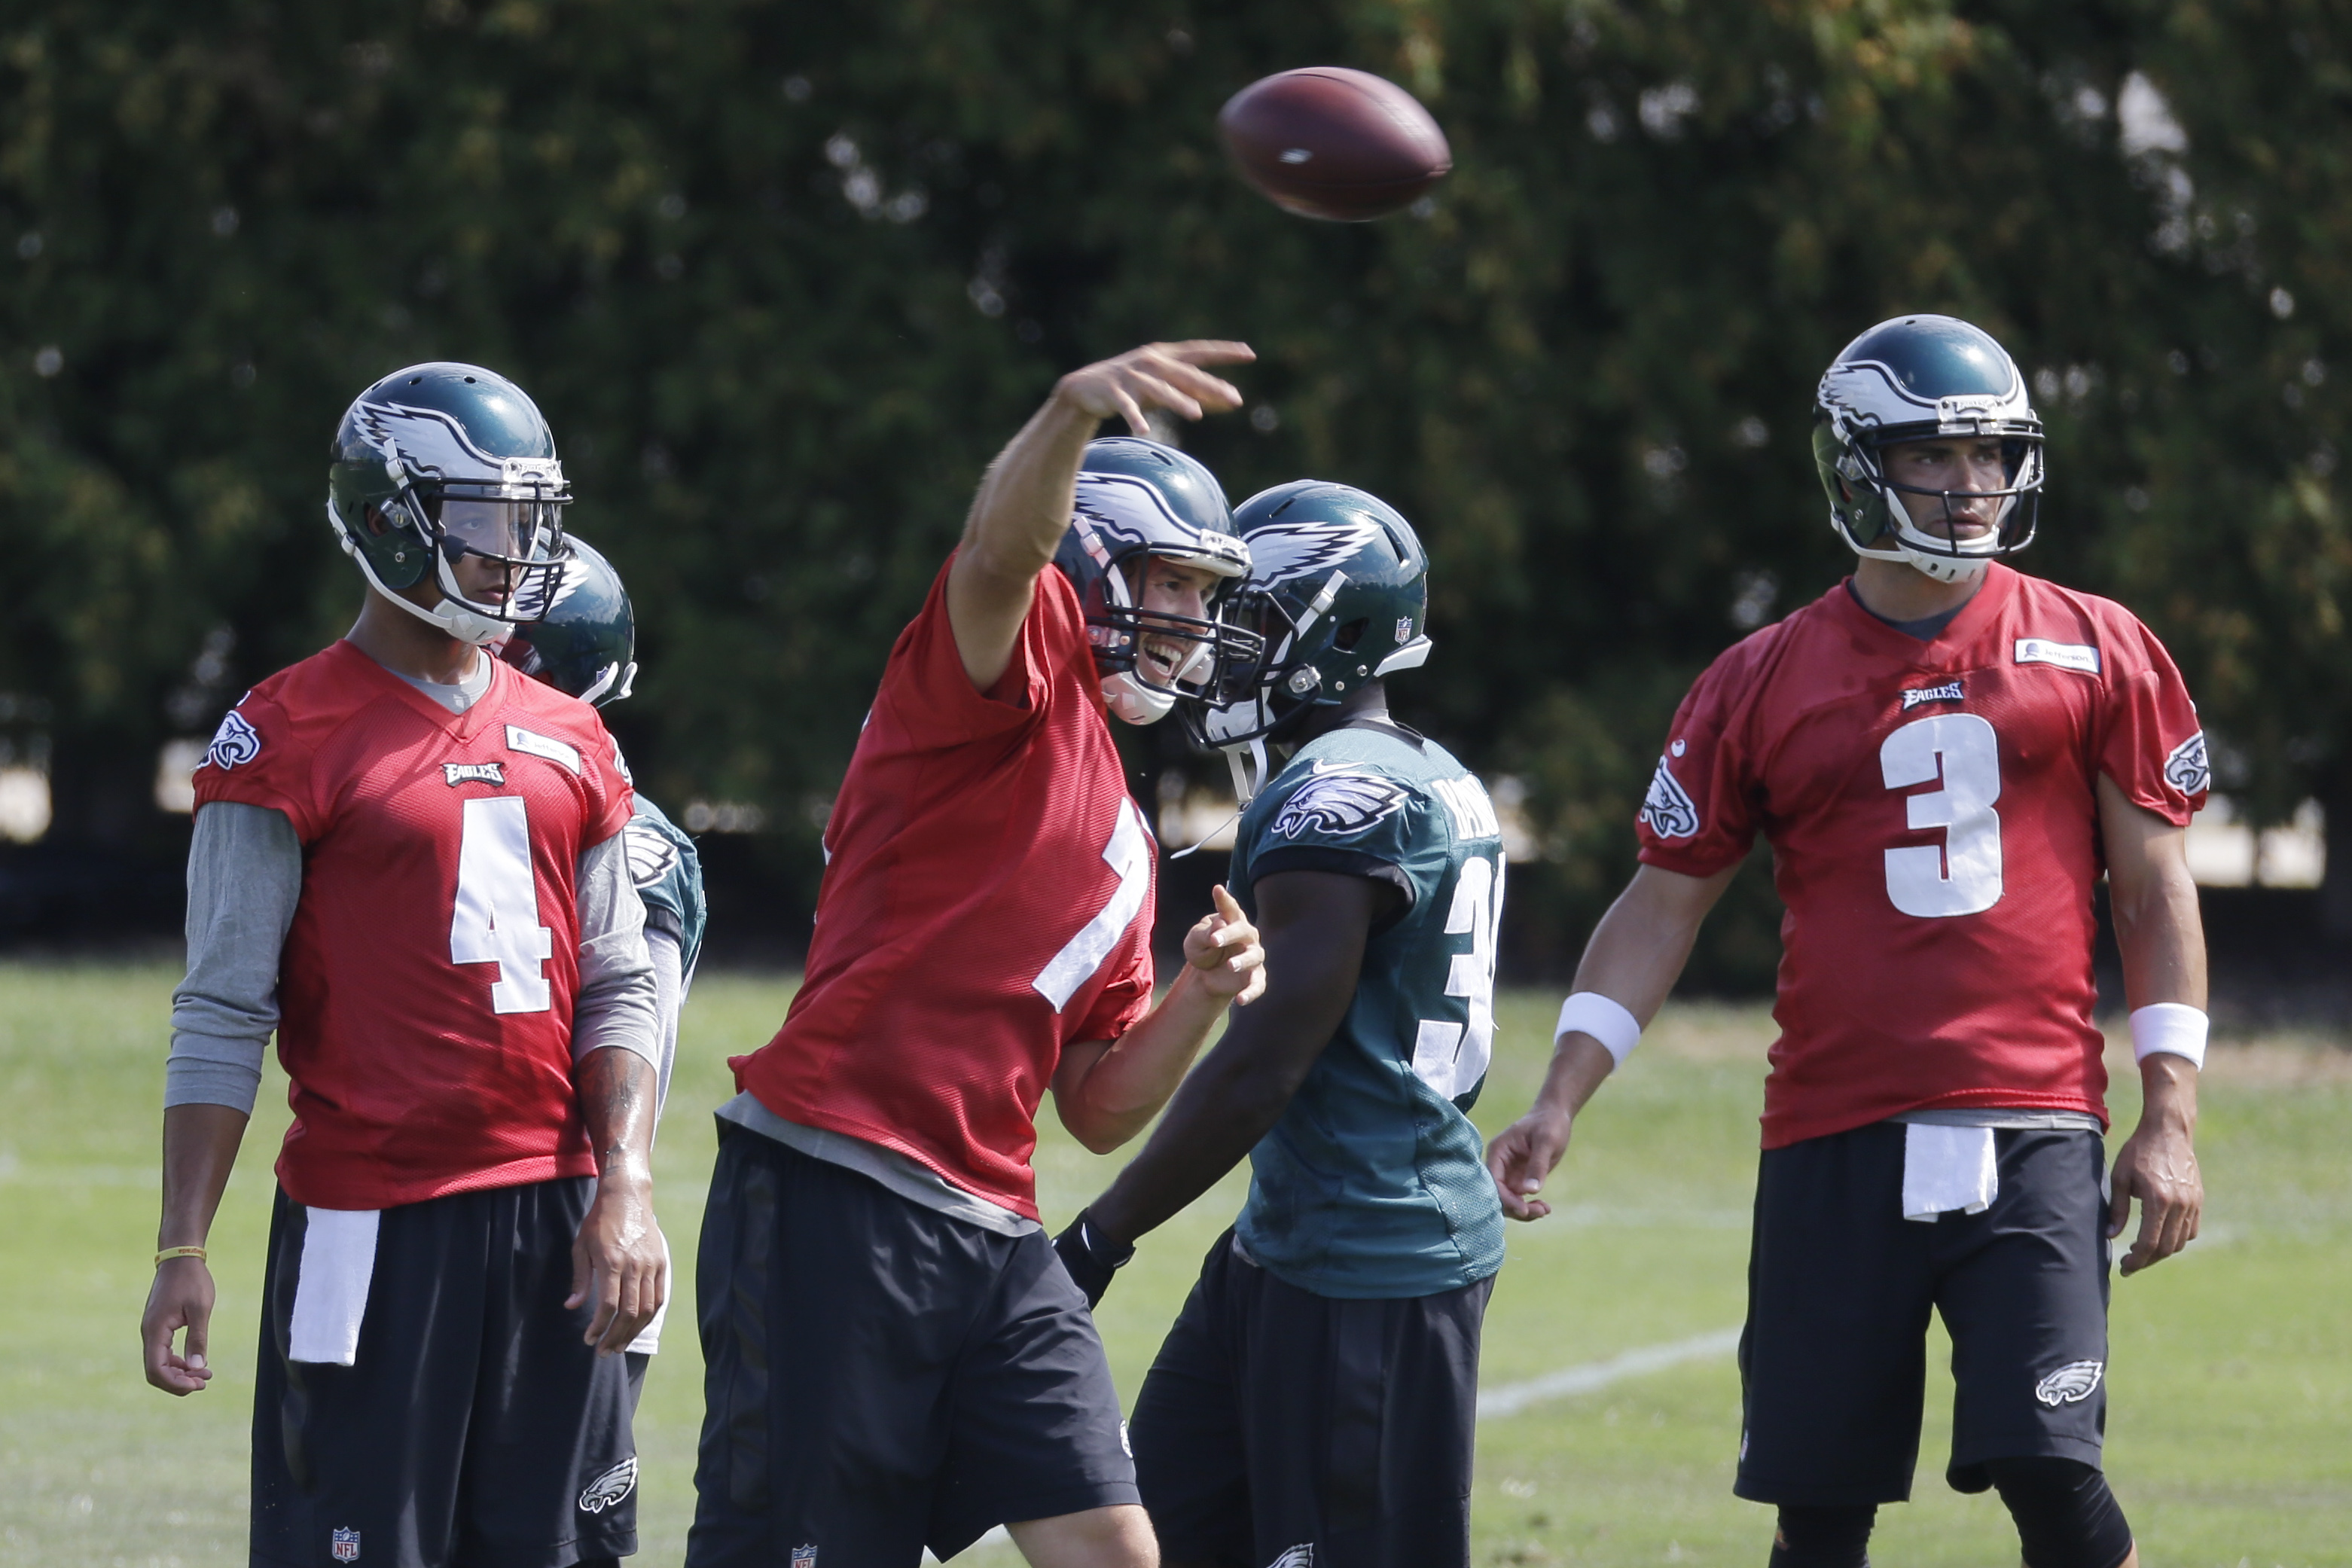 Philadelphia Eagles quarterback Sam Bradford (7) throws a pass as quarterbacks Stephen Morris (4) and Mark Sanchez look on at the NFL football team's practice facility, Wednesday, Sept. 9, 2015, in Philadelphia. (AP Photo/Matt Rourke)